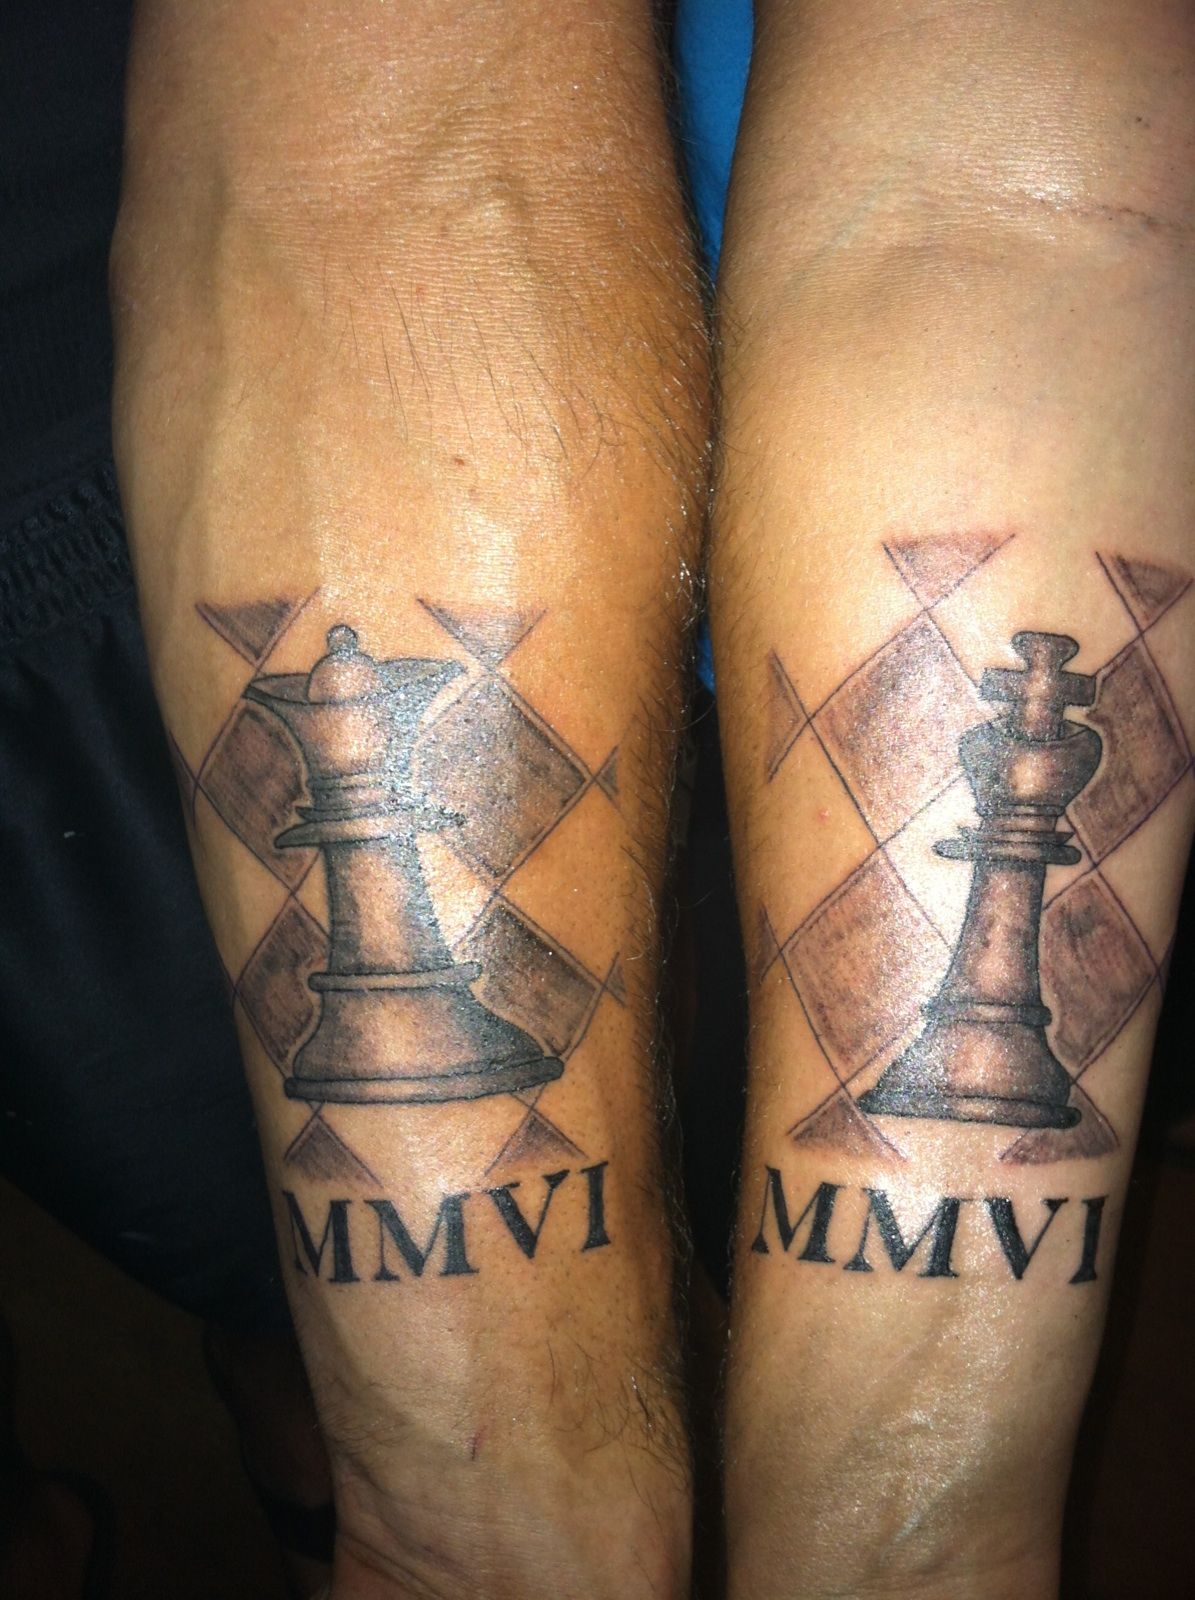 Our King And Queen Chess Tattoos Tattoos Pinterest Chess Tattoo Queen Chess And Tattoo